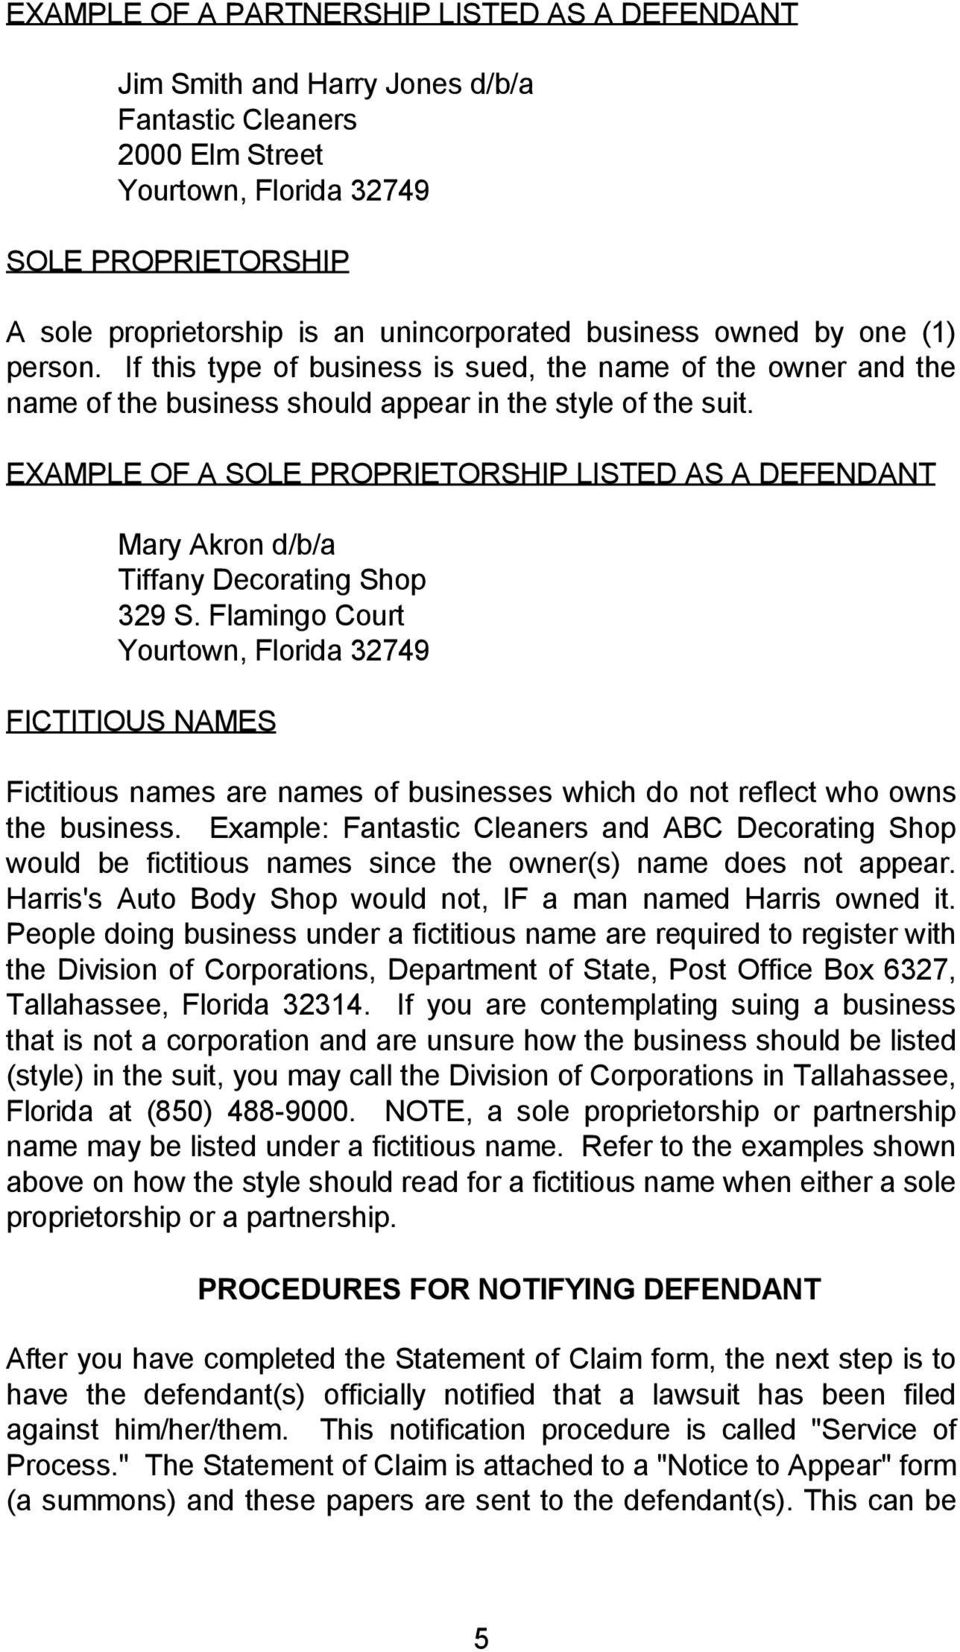 EXAMPLE OF A SOLE PROPRIETORSHIP LISTED AS A DEFENDANT Mary Akron d/b/a Tiffany Decorating Shop 329 S.